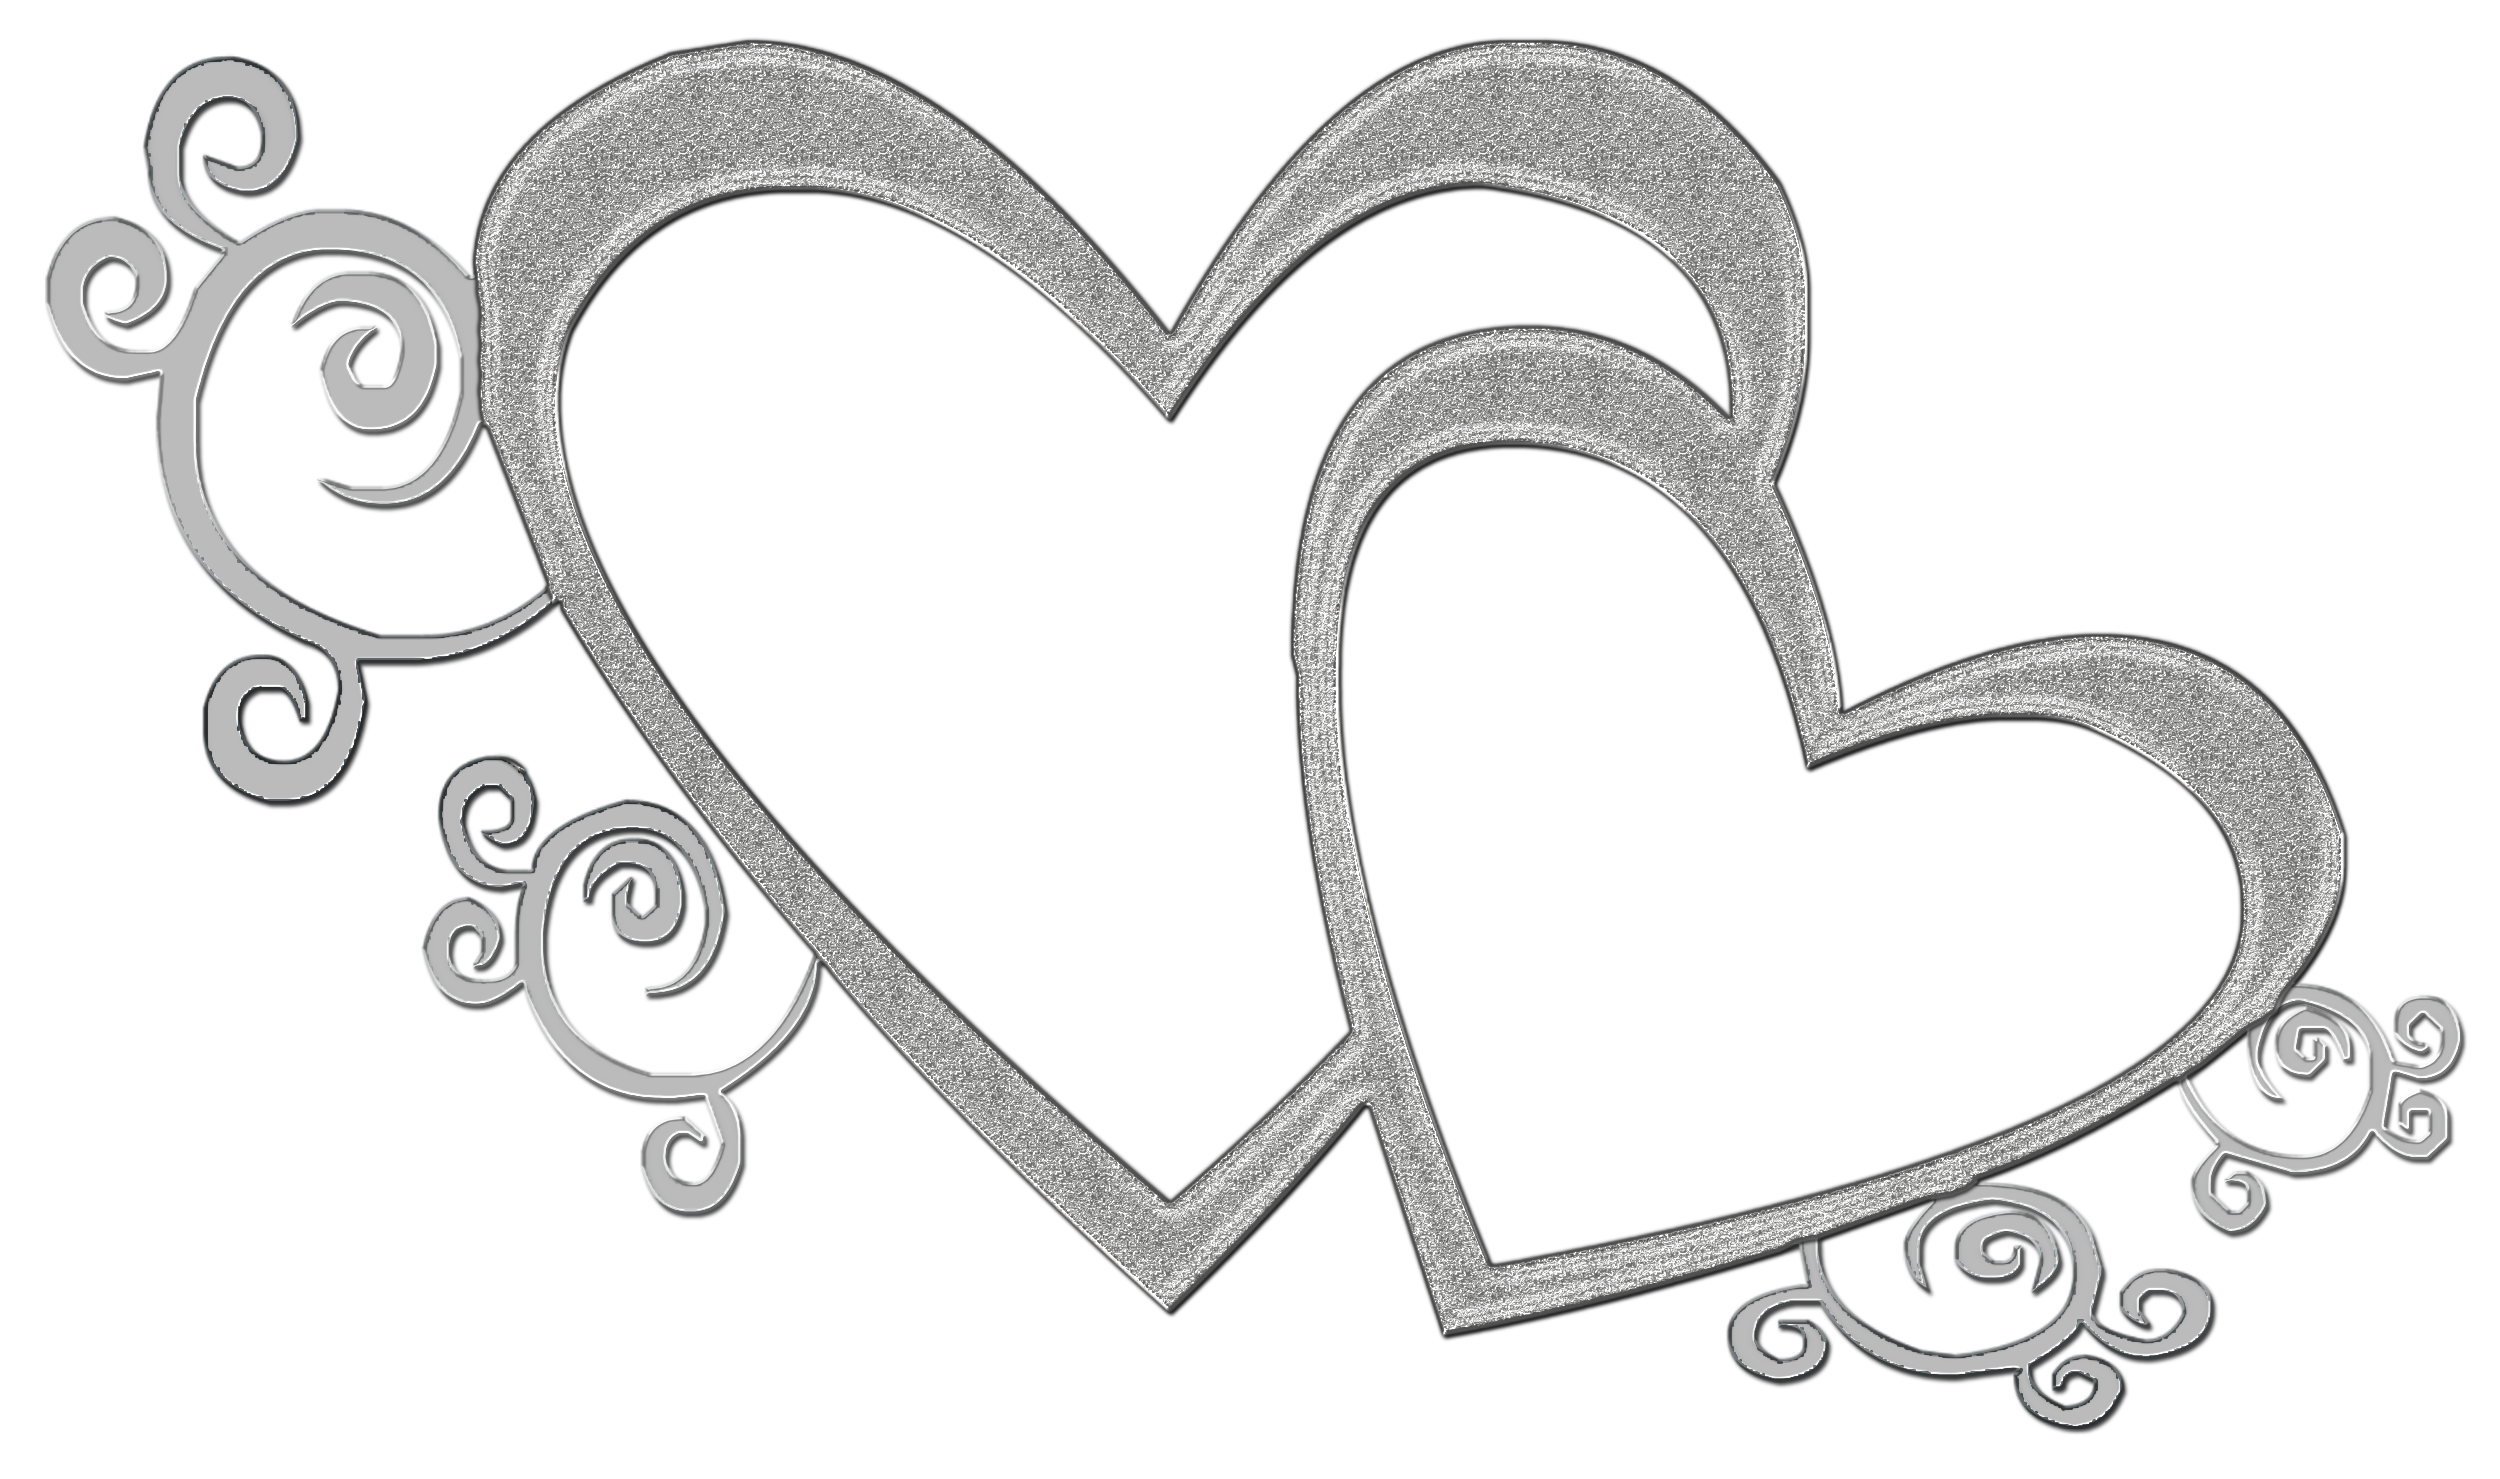 Wedding heart clipart banner black and white library Double heart wedding clipart - ClipartFest banner black and white library